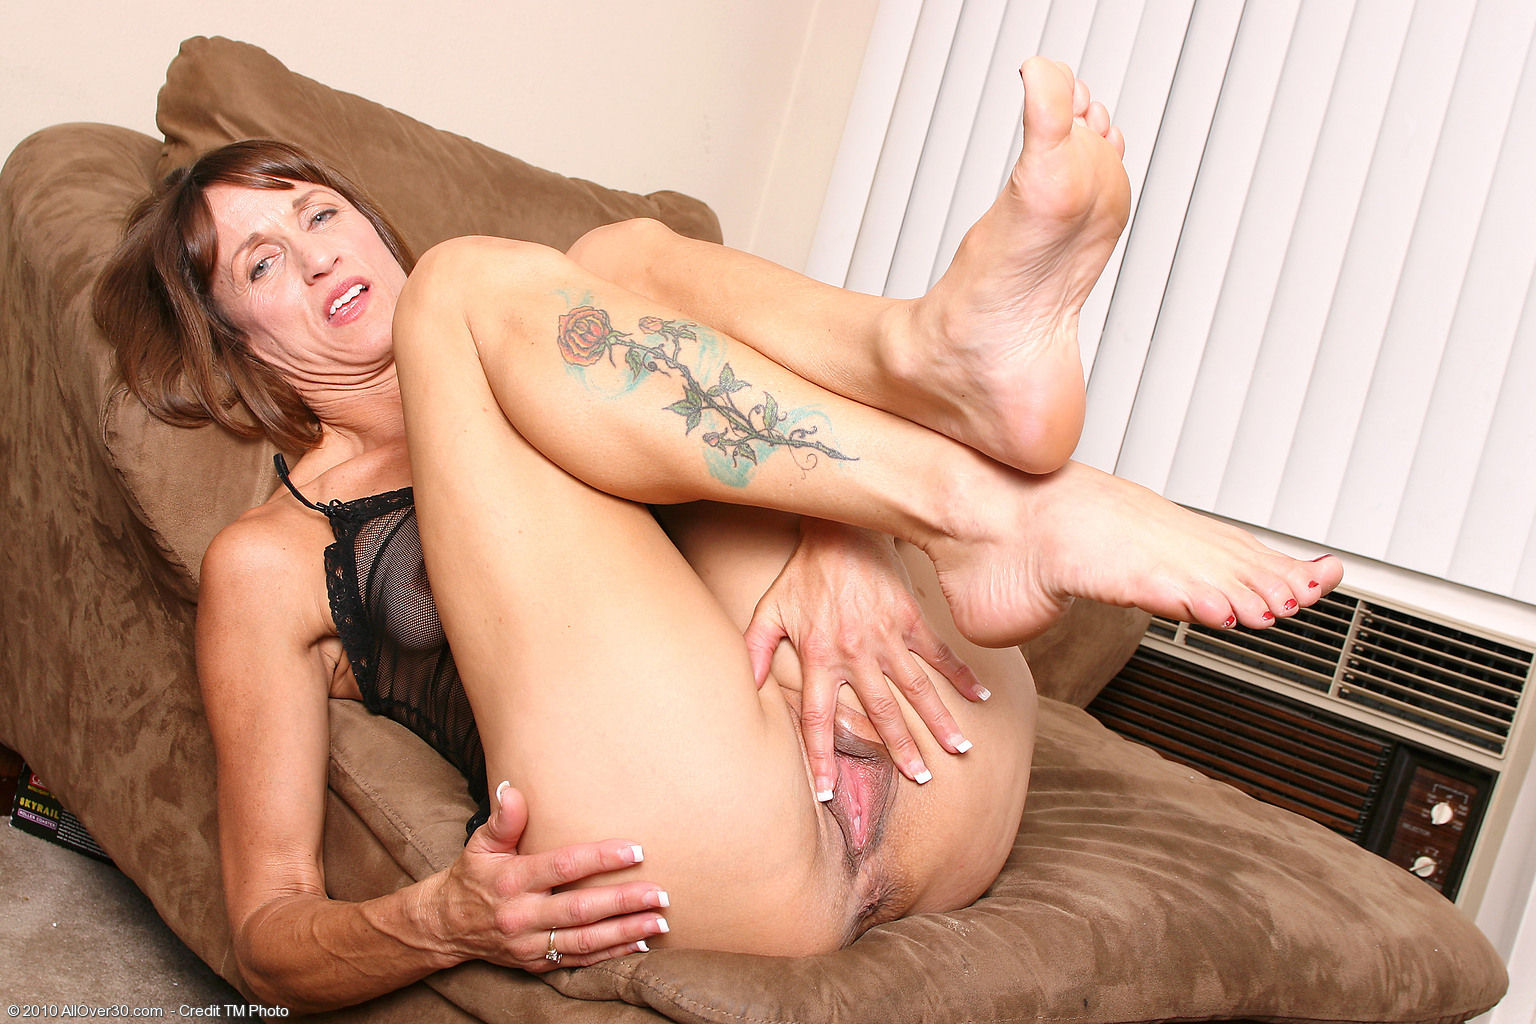 Mom son sex anal oral